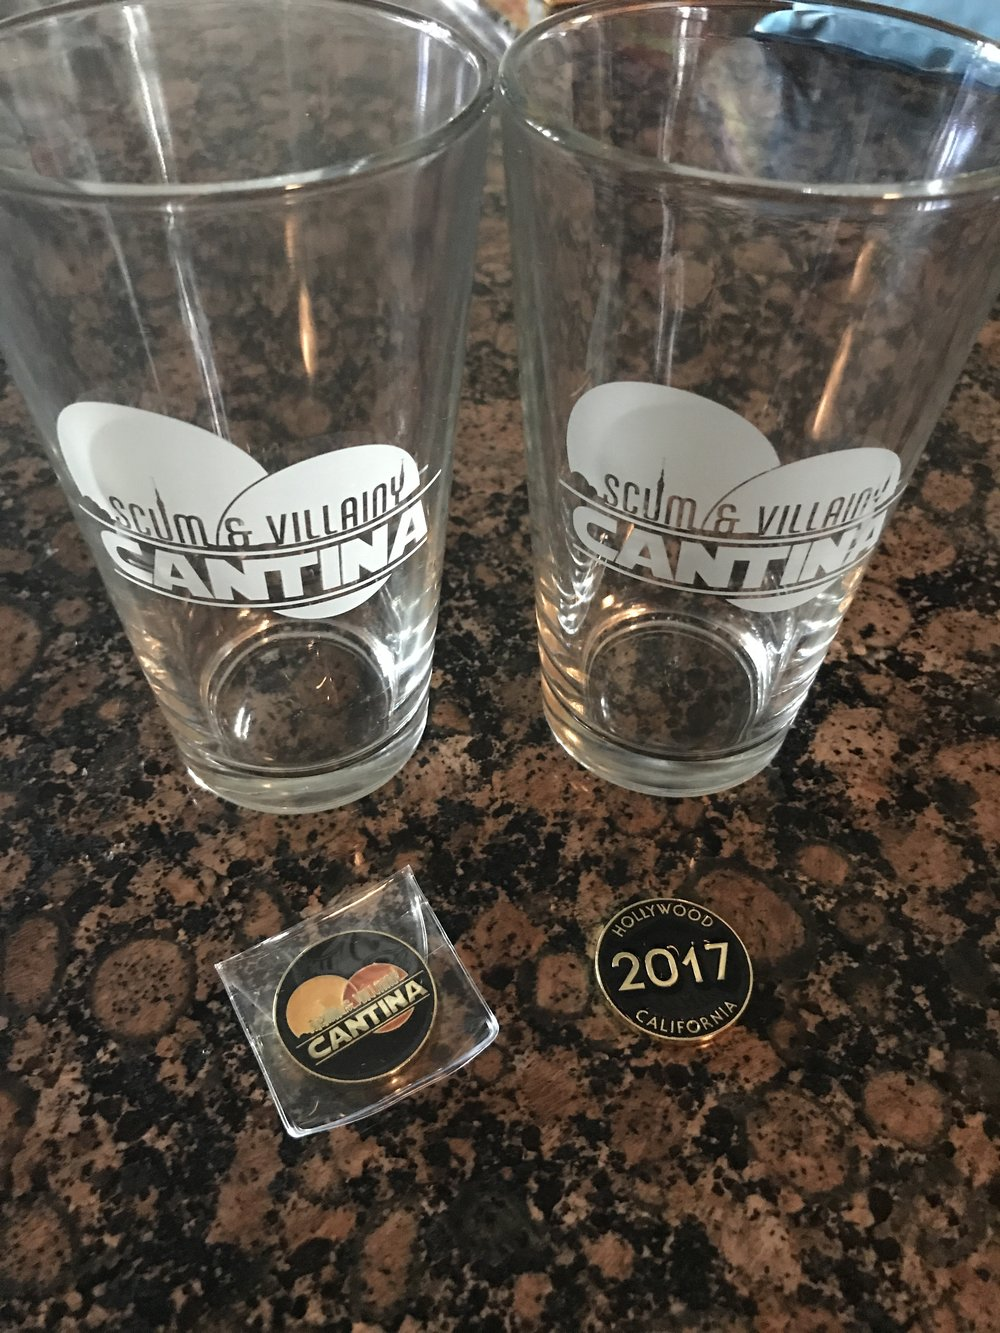 Scum & Villainy Cantina challenge coin and Pint glass - Star Wars Bar - Wandering Jokas Travel Blog